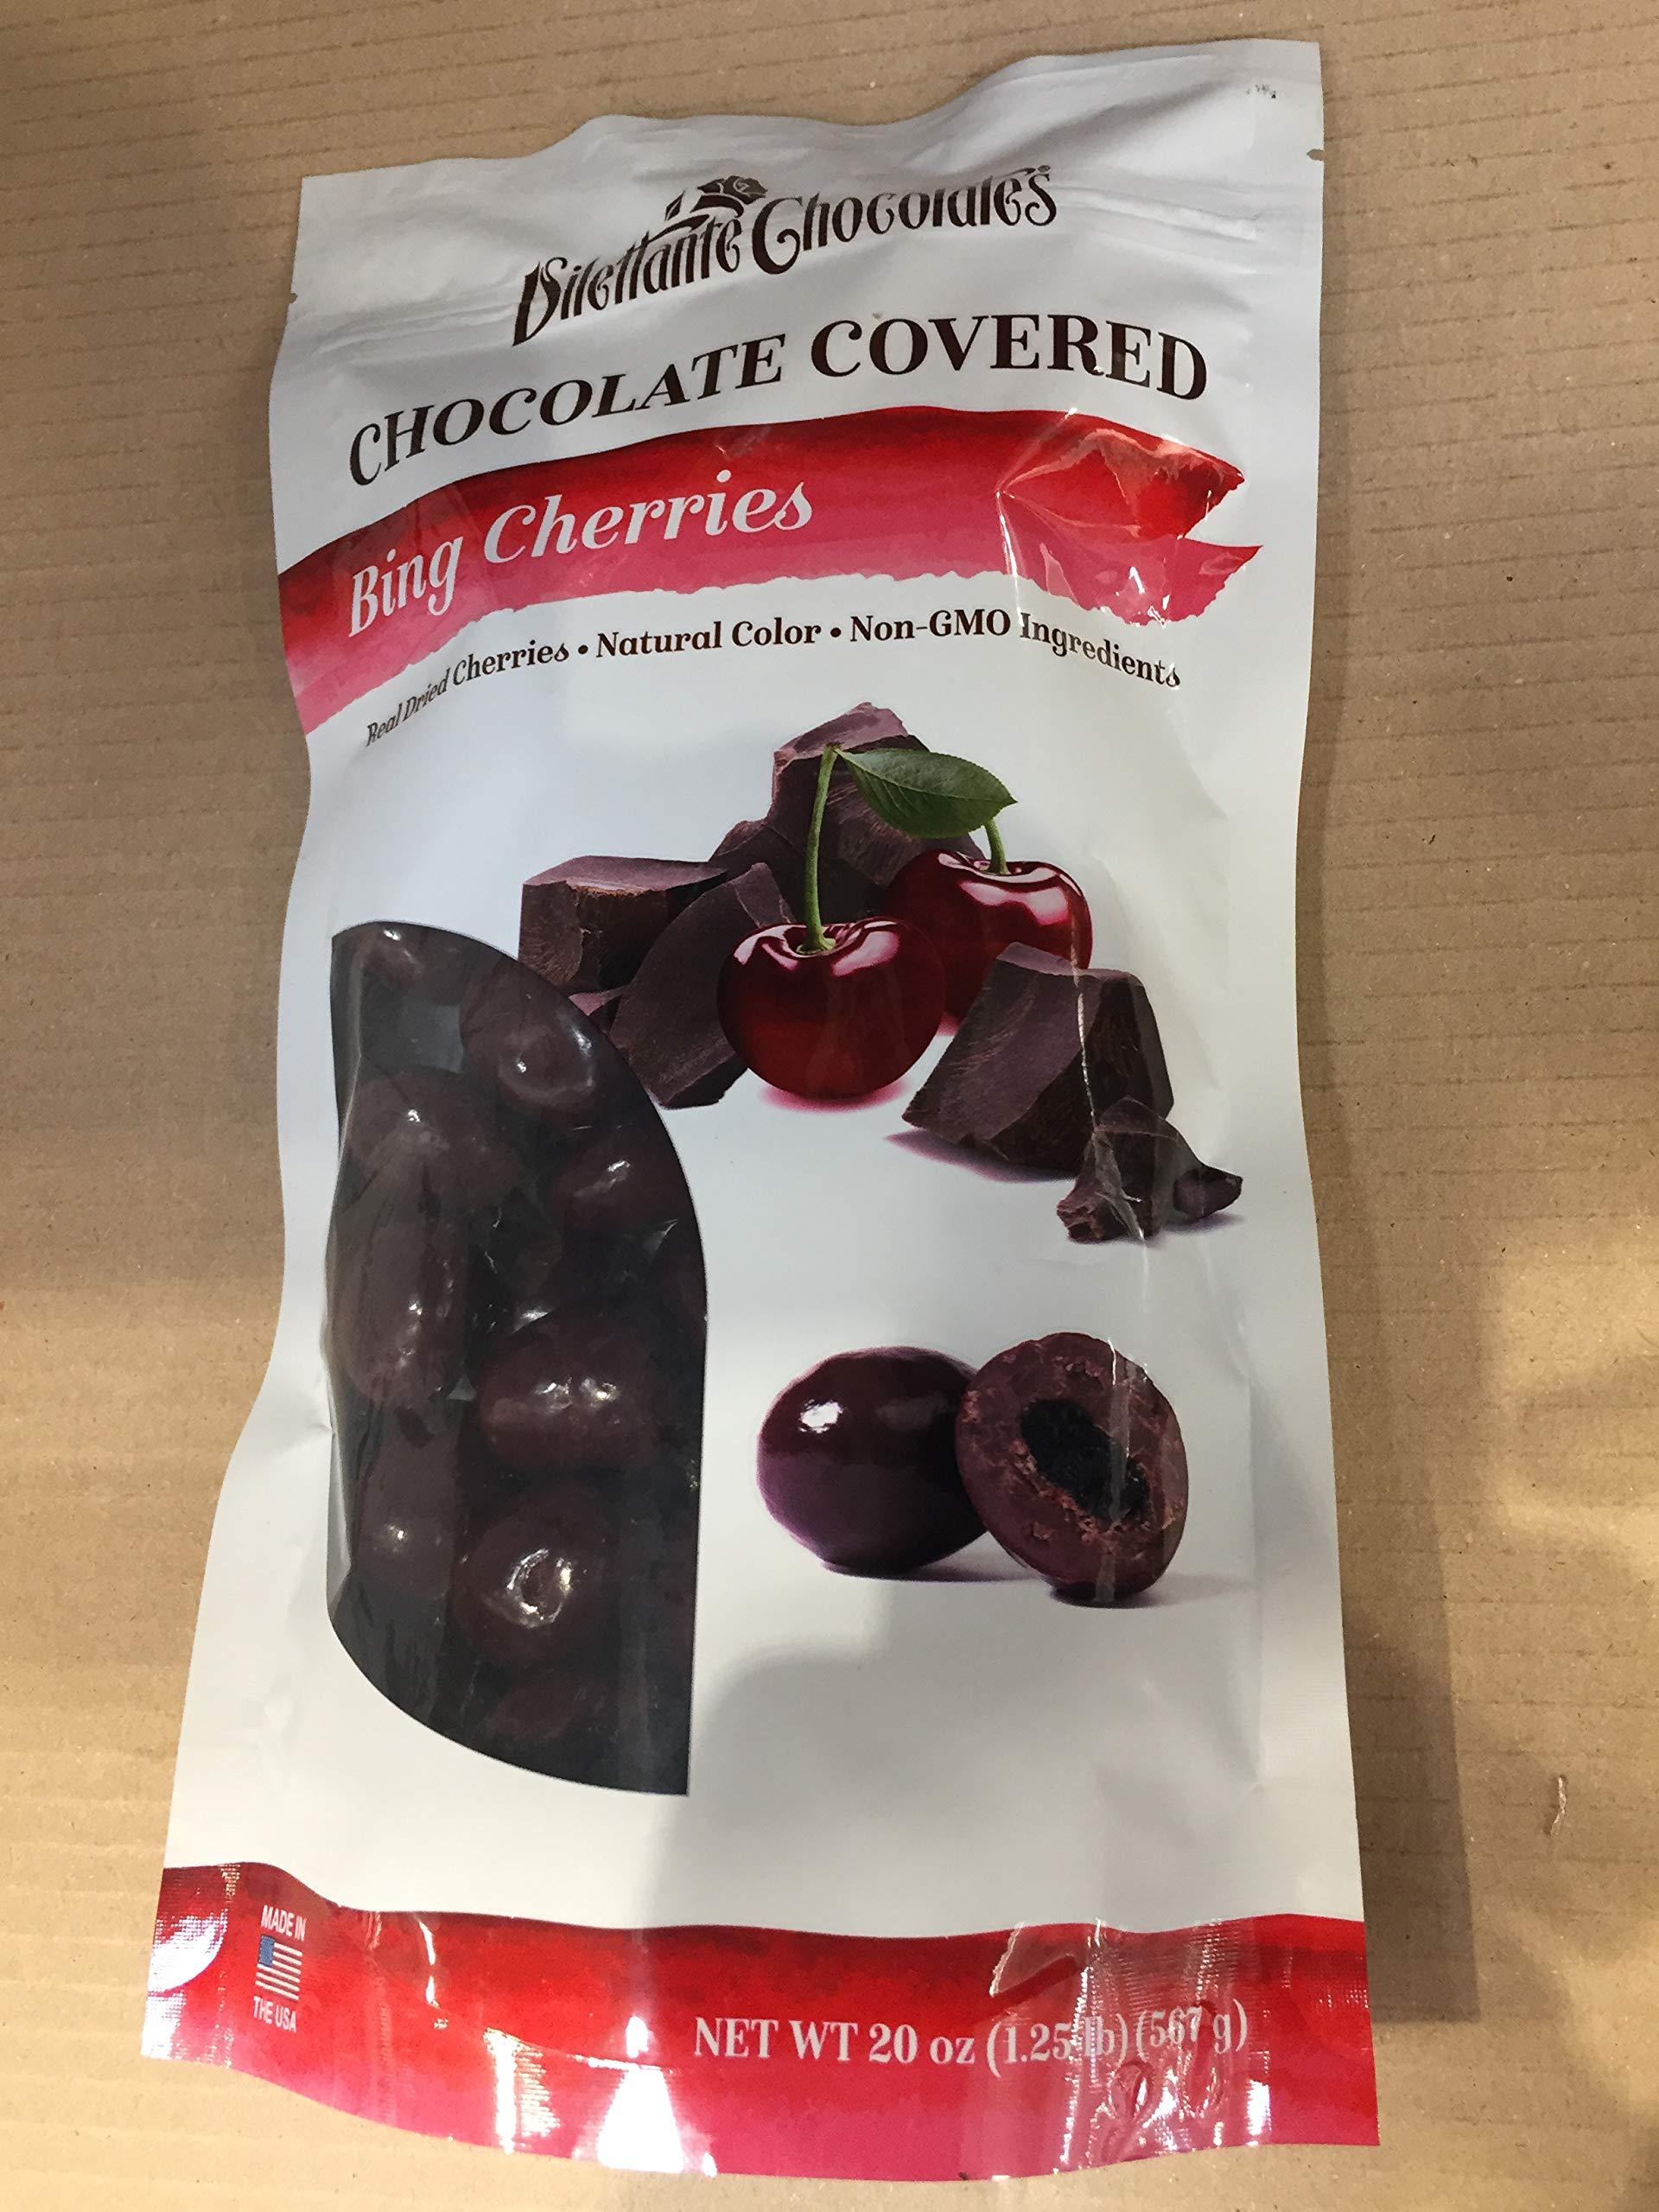 Dilettante Chocolates, Bing Cherries Chocolate Covered, 20 OZ (One Pack) by Dilettante